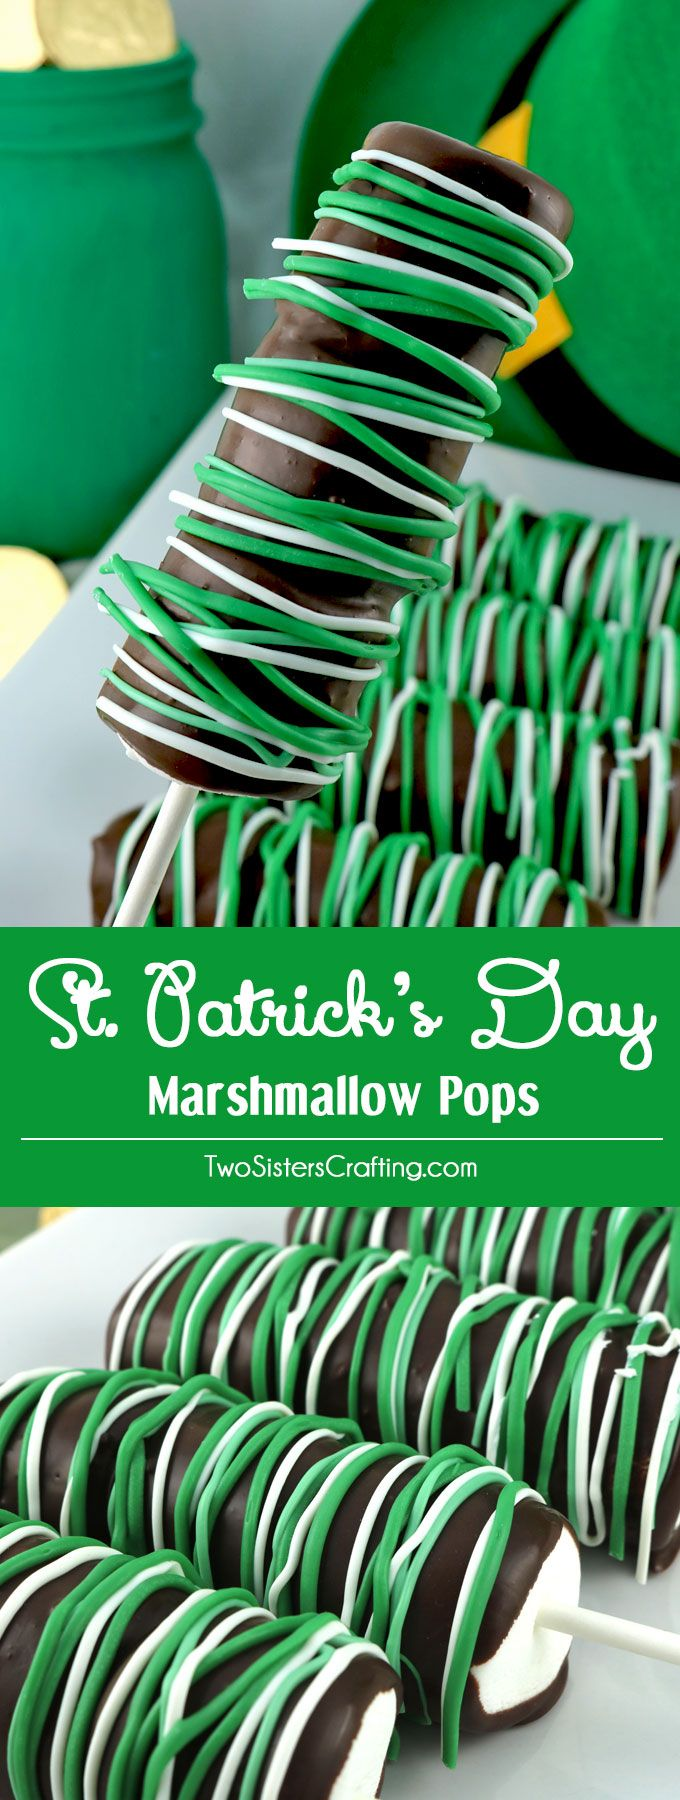 Looking for a unique and delicious St. Patrick's Day dessert for your family? How about St. Patrick's Day Marshmallow Pops? So easy to make and you won't believe how delicious they are. They would be great at a St. Patrick's Day party food. Pin this delicious St. Patrick's Day treat for later and follow us for more great St. Patrick's Day Food Ideas.